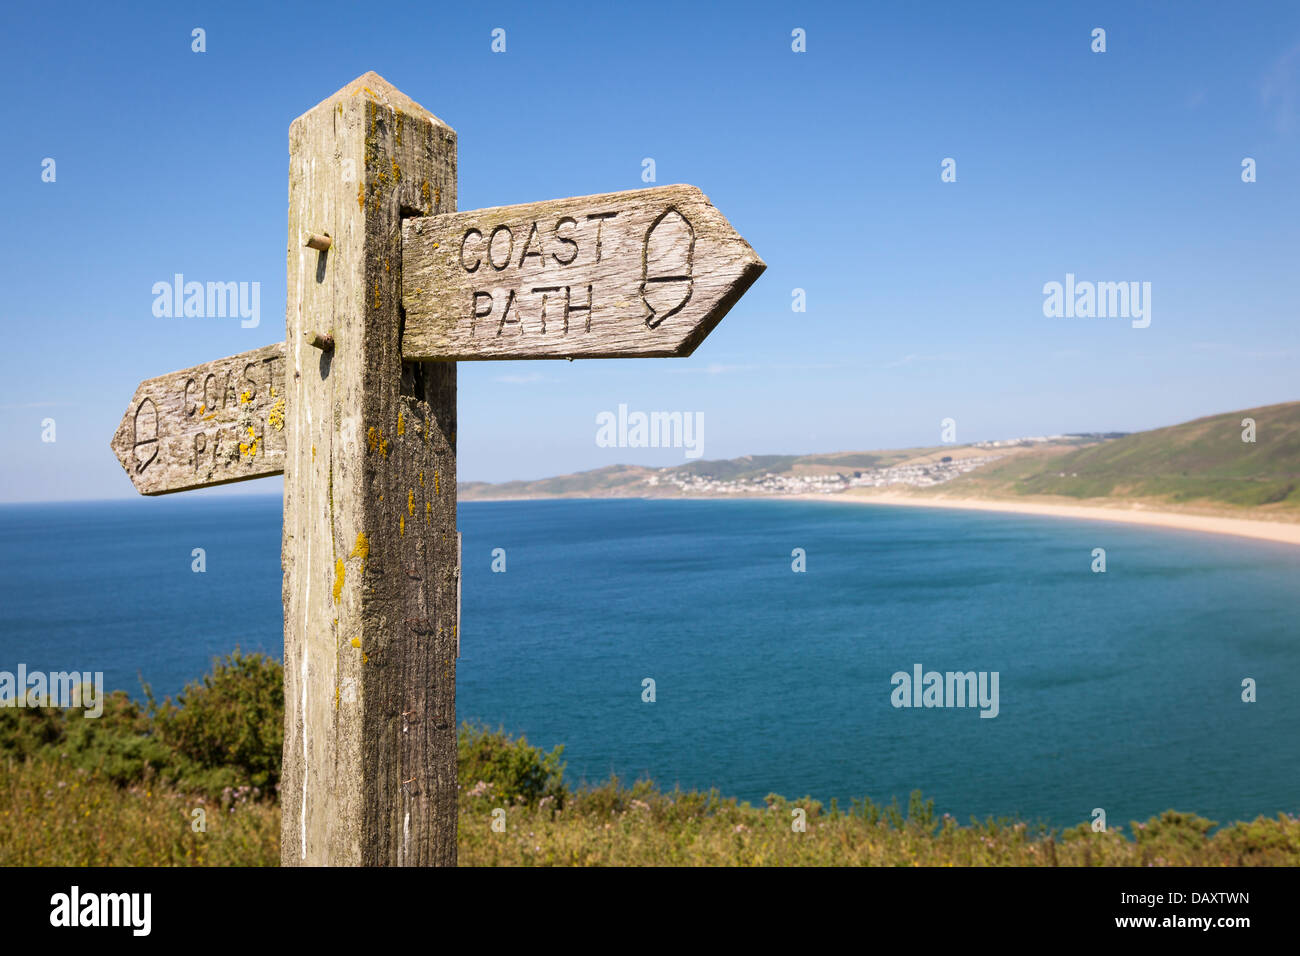 Coastal path with a sign, alongside Woolacombe beach in Devon, England. - Stock Image